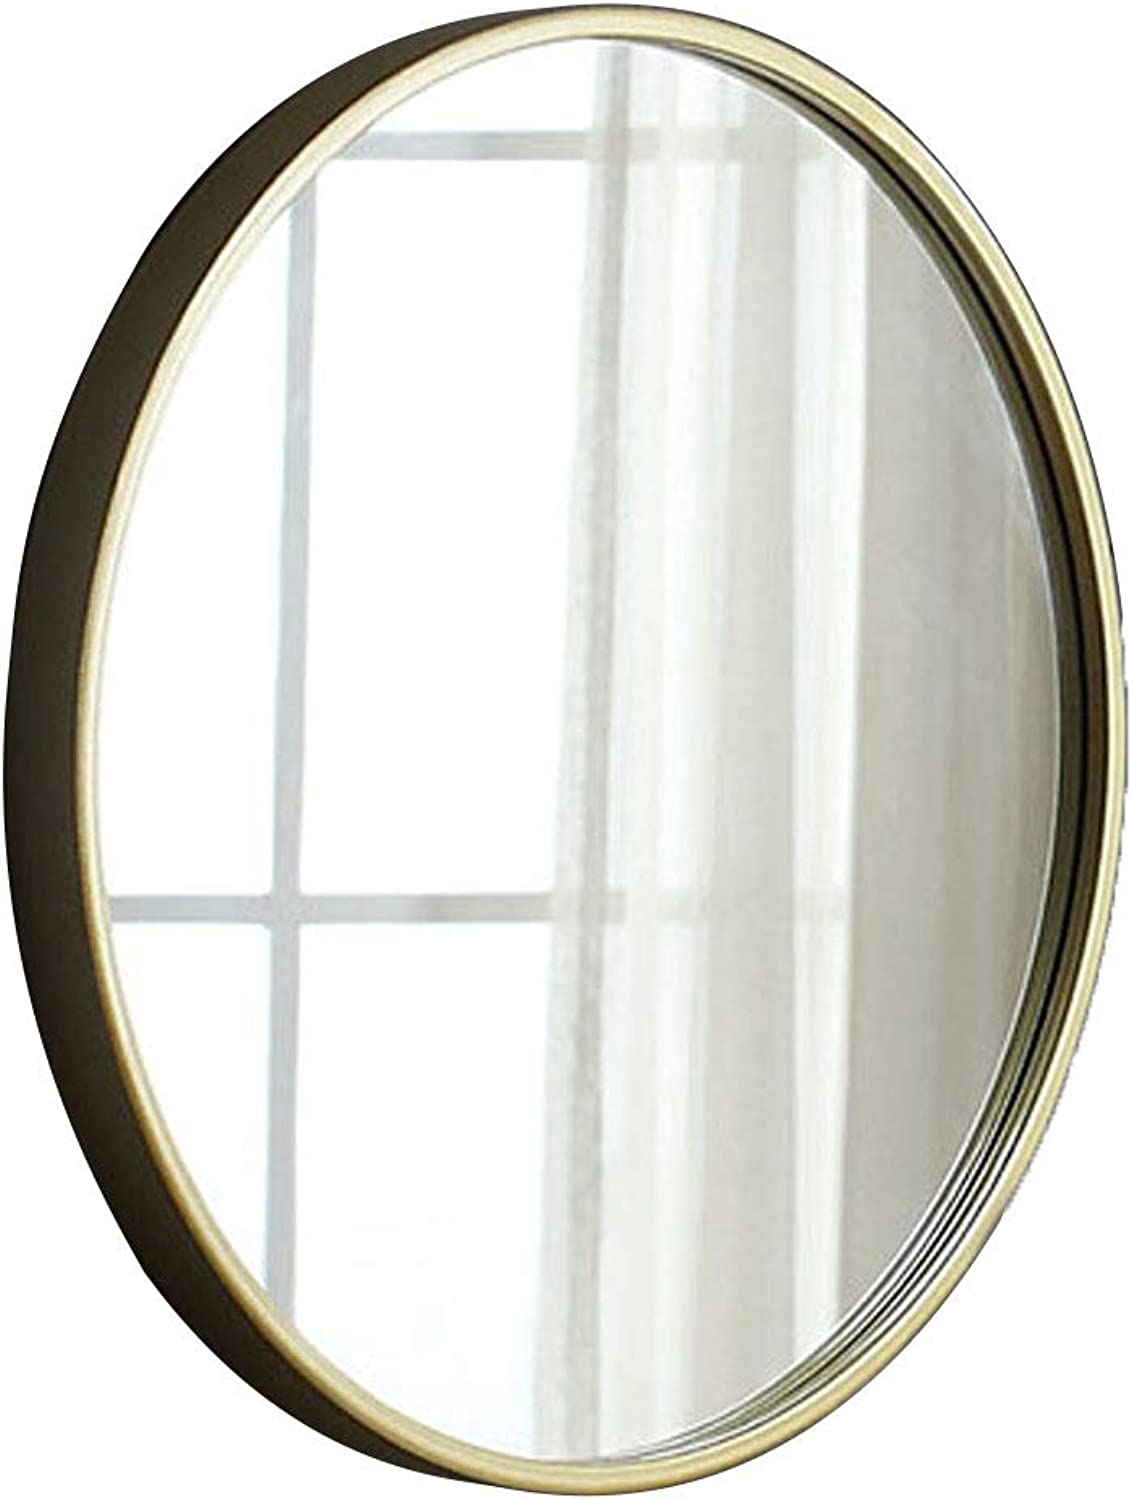 Round Bathroom Mirror Circle Wall-Mounted Makeup Shaving Mirror Metal Frame Drilled Holes 50-80cm Available gold